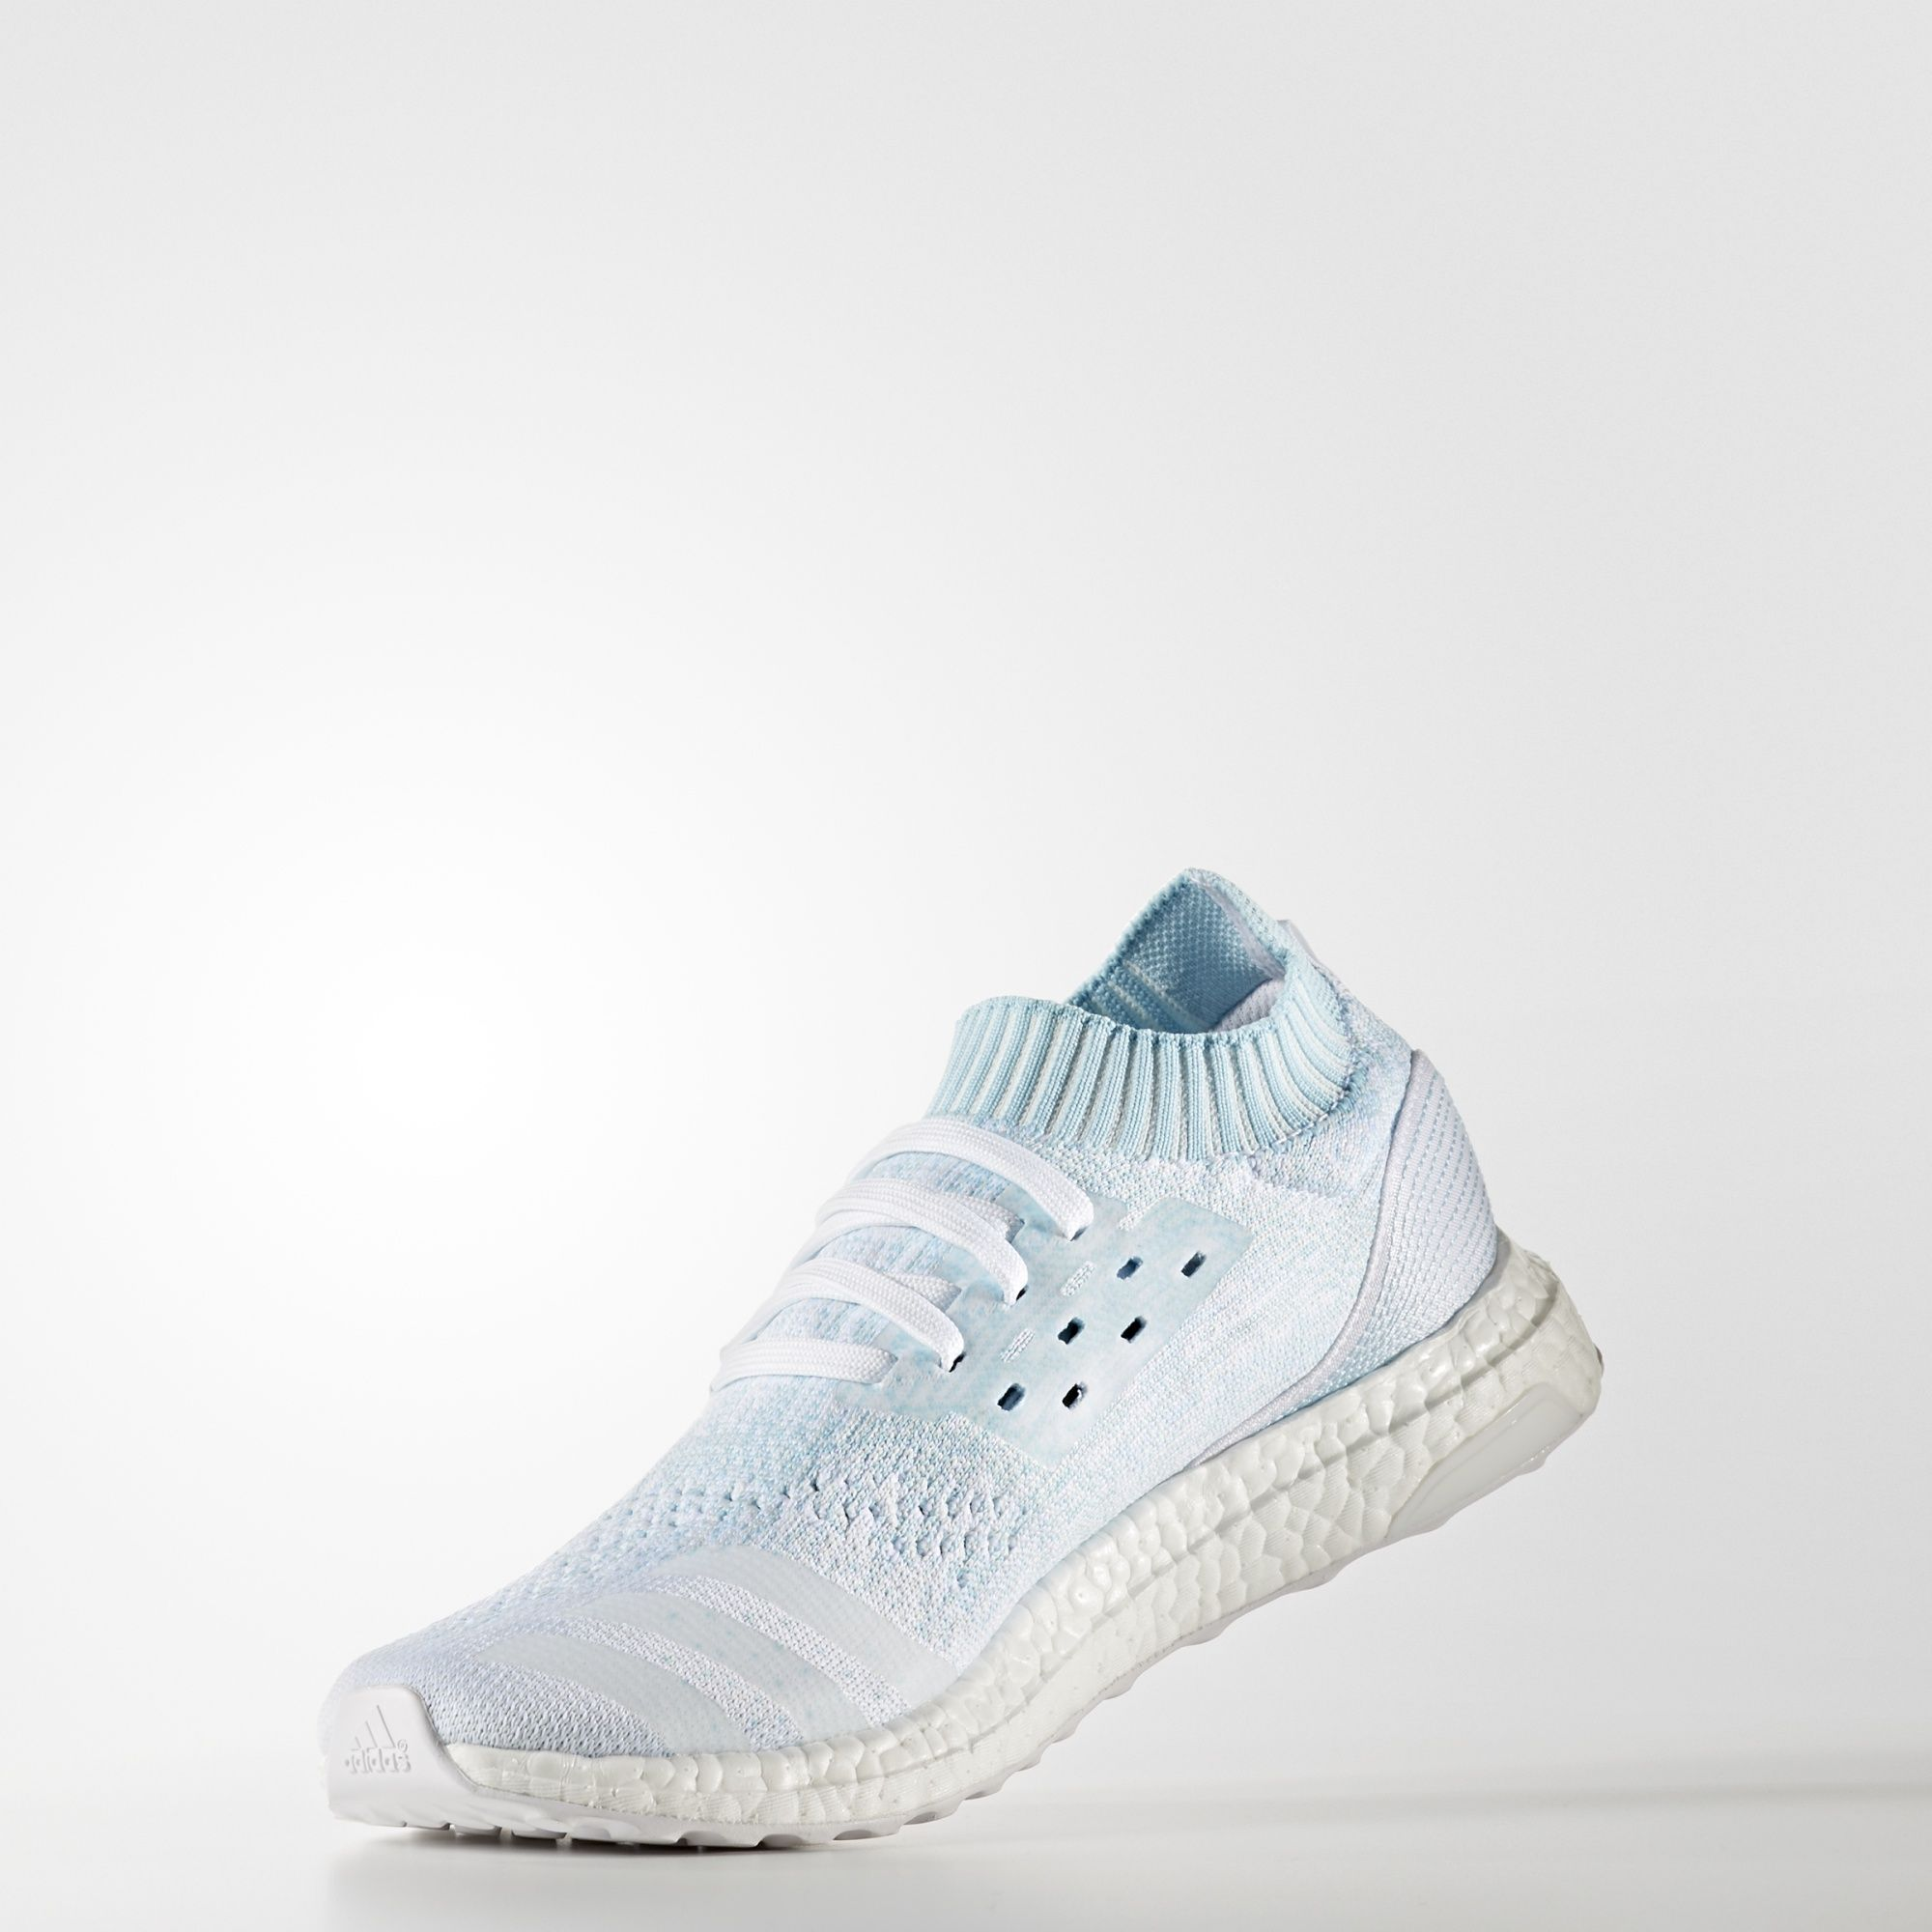 Parley x adidas Ultra Boost Uncaged Icey Blue CP9686 2